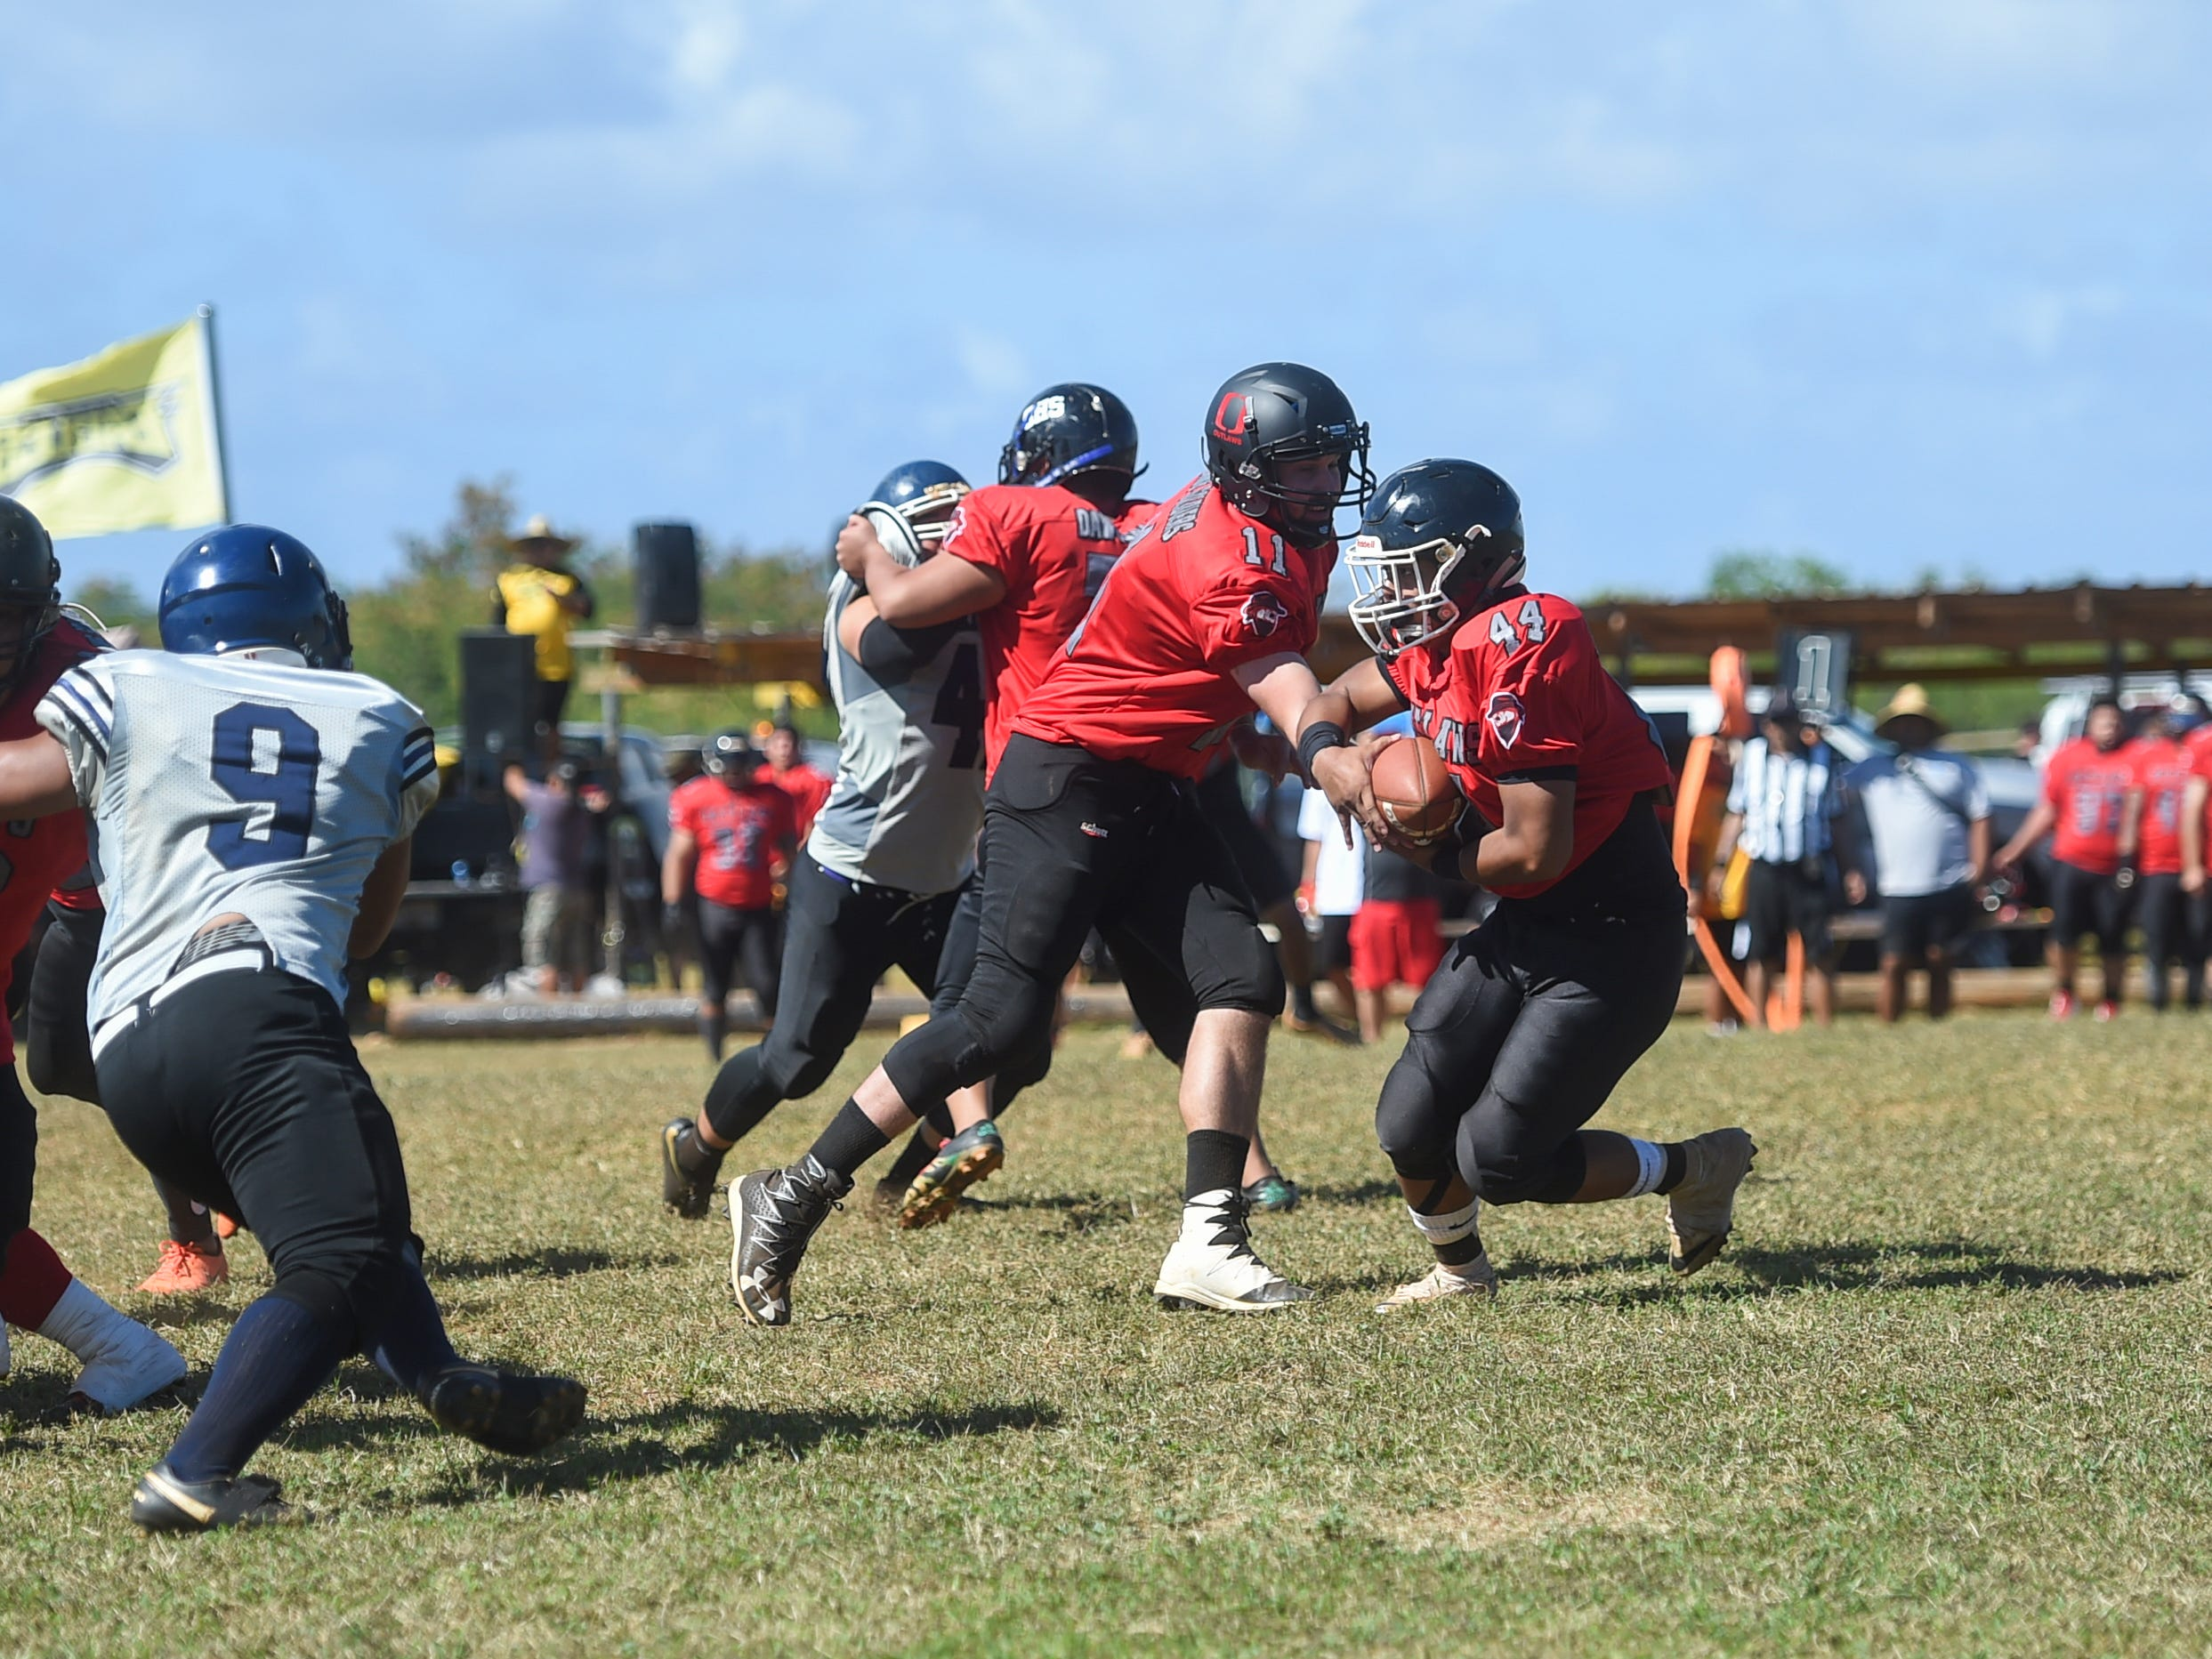 Outlaws quarterback Victor Malveaux (11) hands the ball off to teammate Kobe Quimbao (44) during their Budweiser Guahan Varsity Football League game against the Guam Raiders at Eagles Field in Mangilao, Feb. 16, 2019.